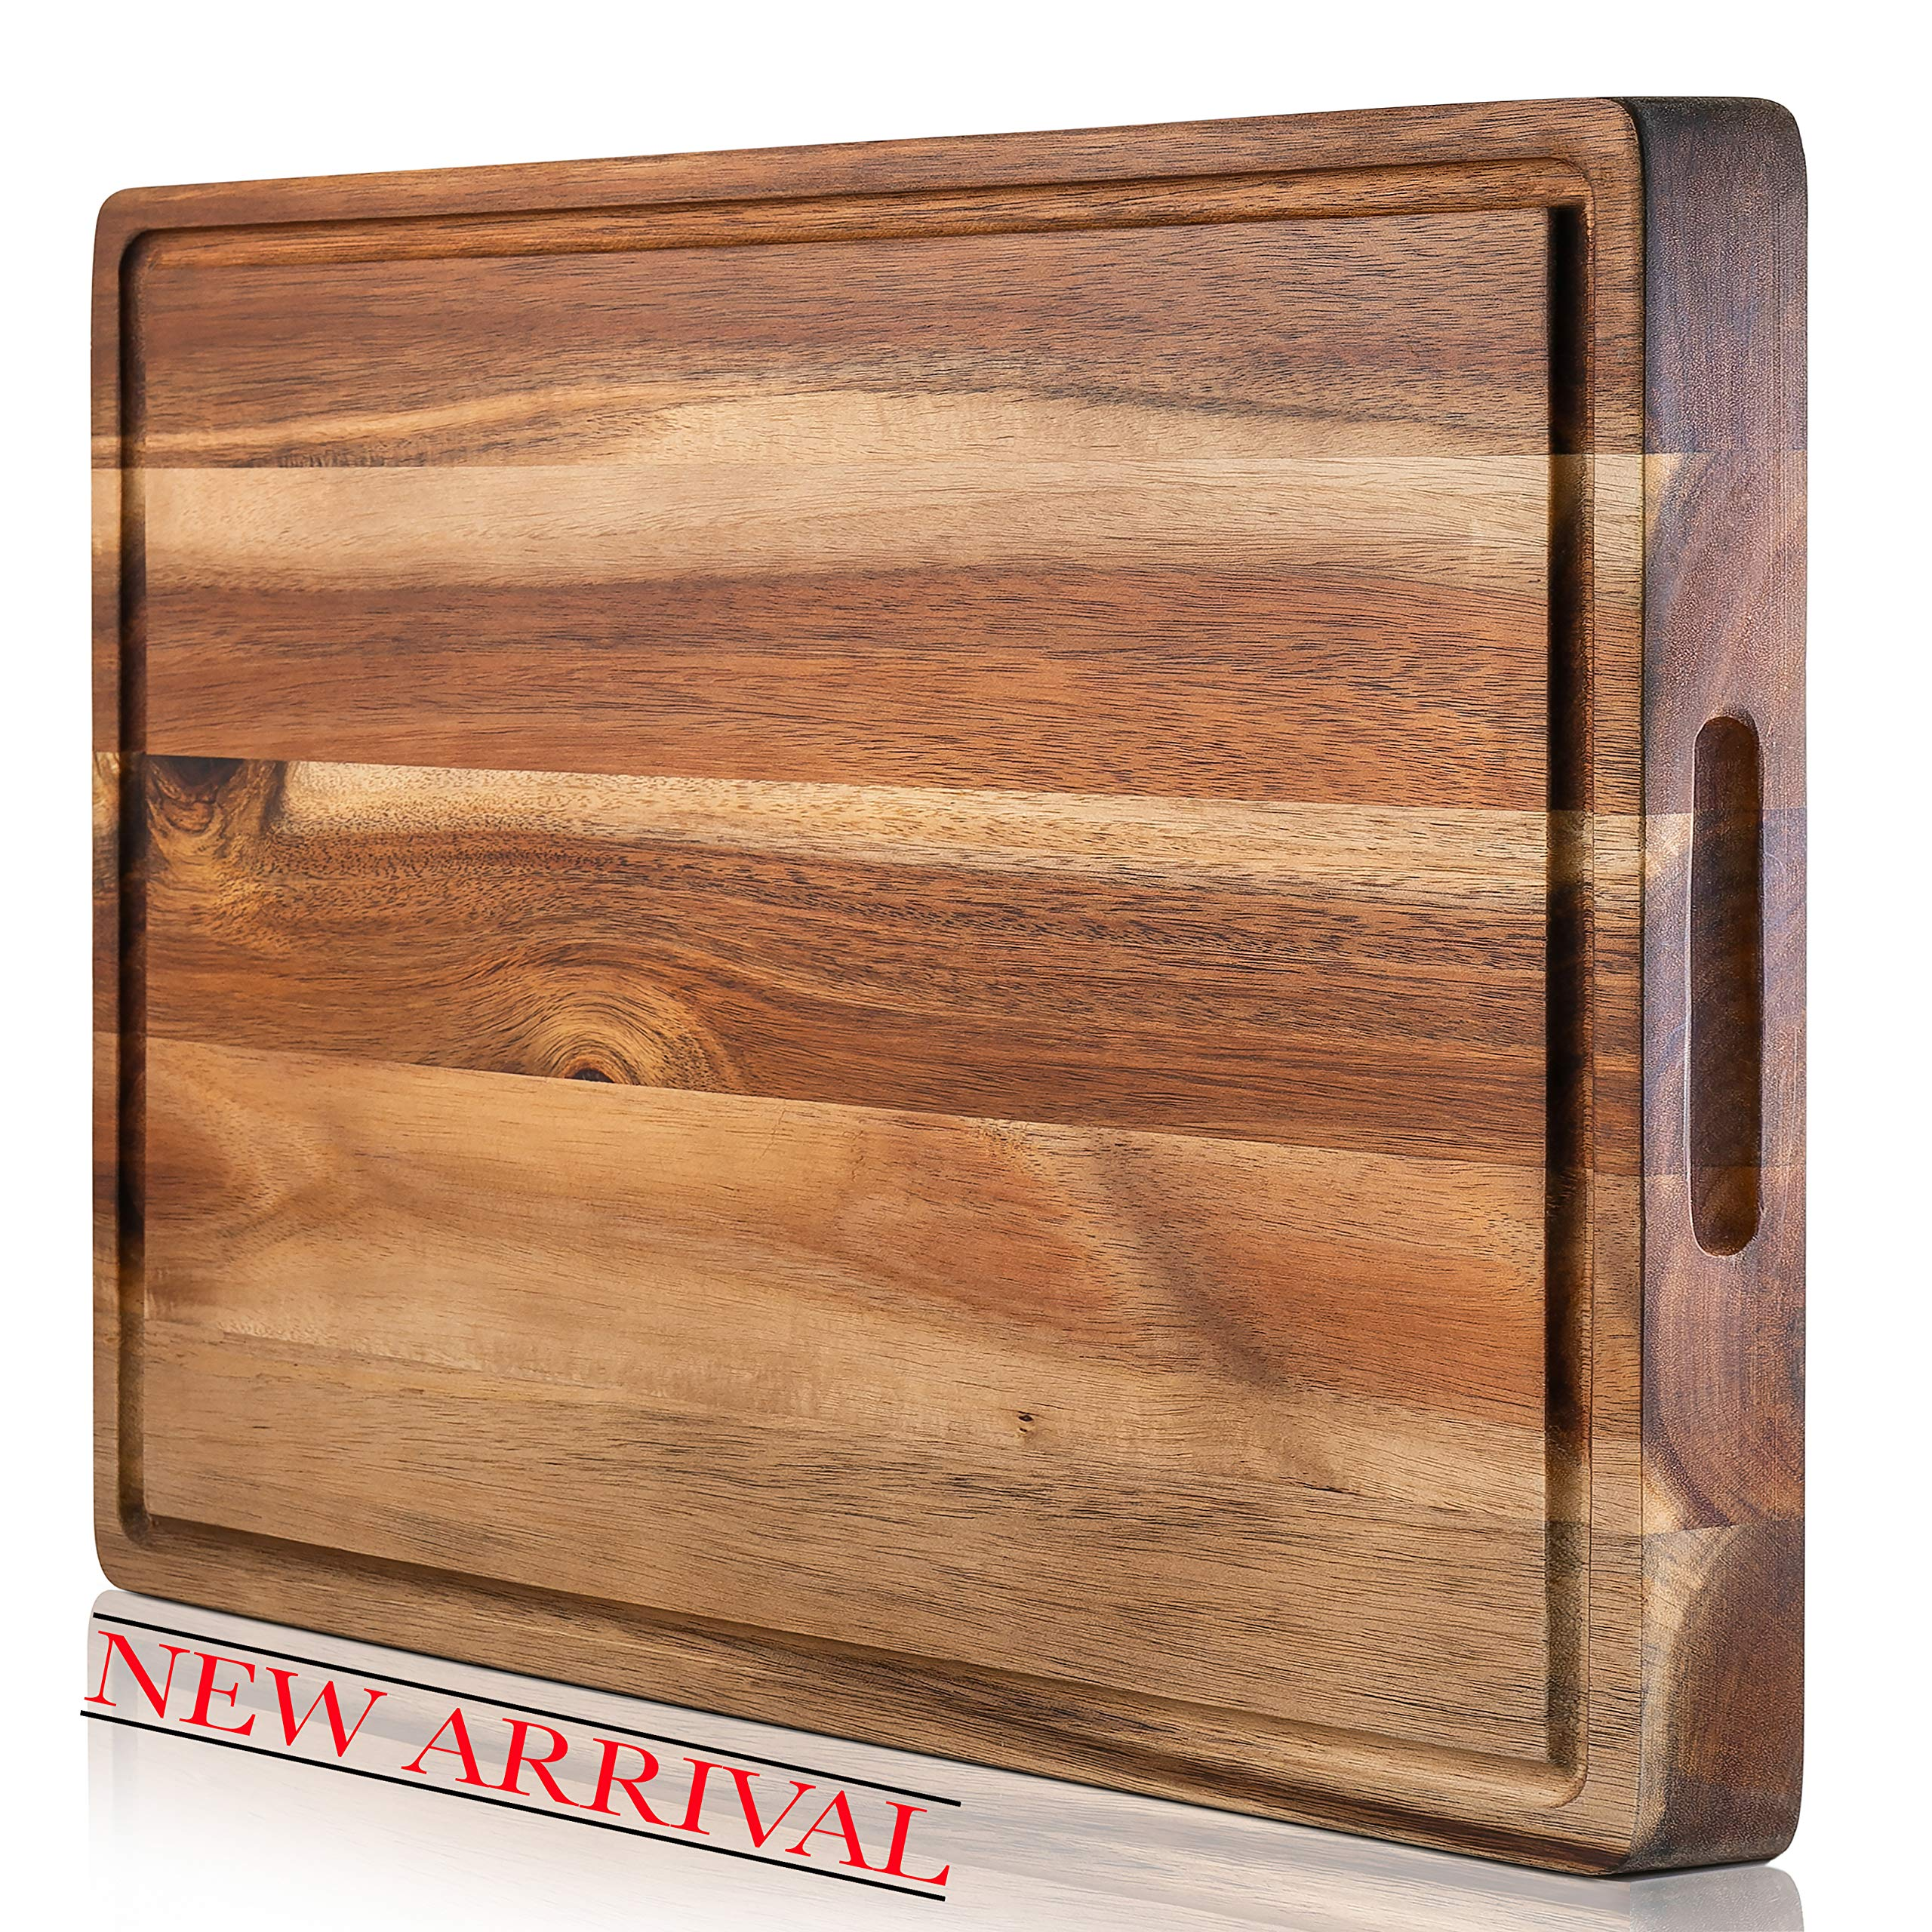 SoulFino EXTRA LARGE Acacia Cutting Board & Butcher Block w/Juice Groove - 17x13x1.4'' Cutting Board